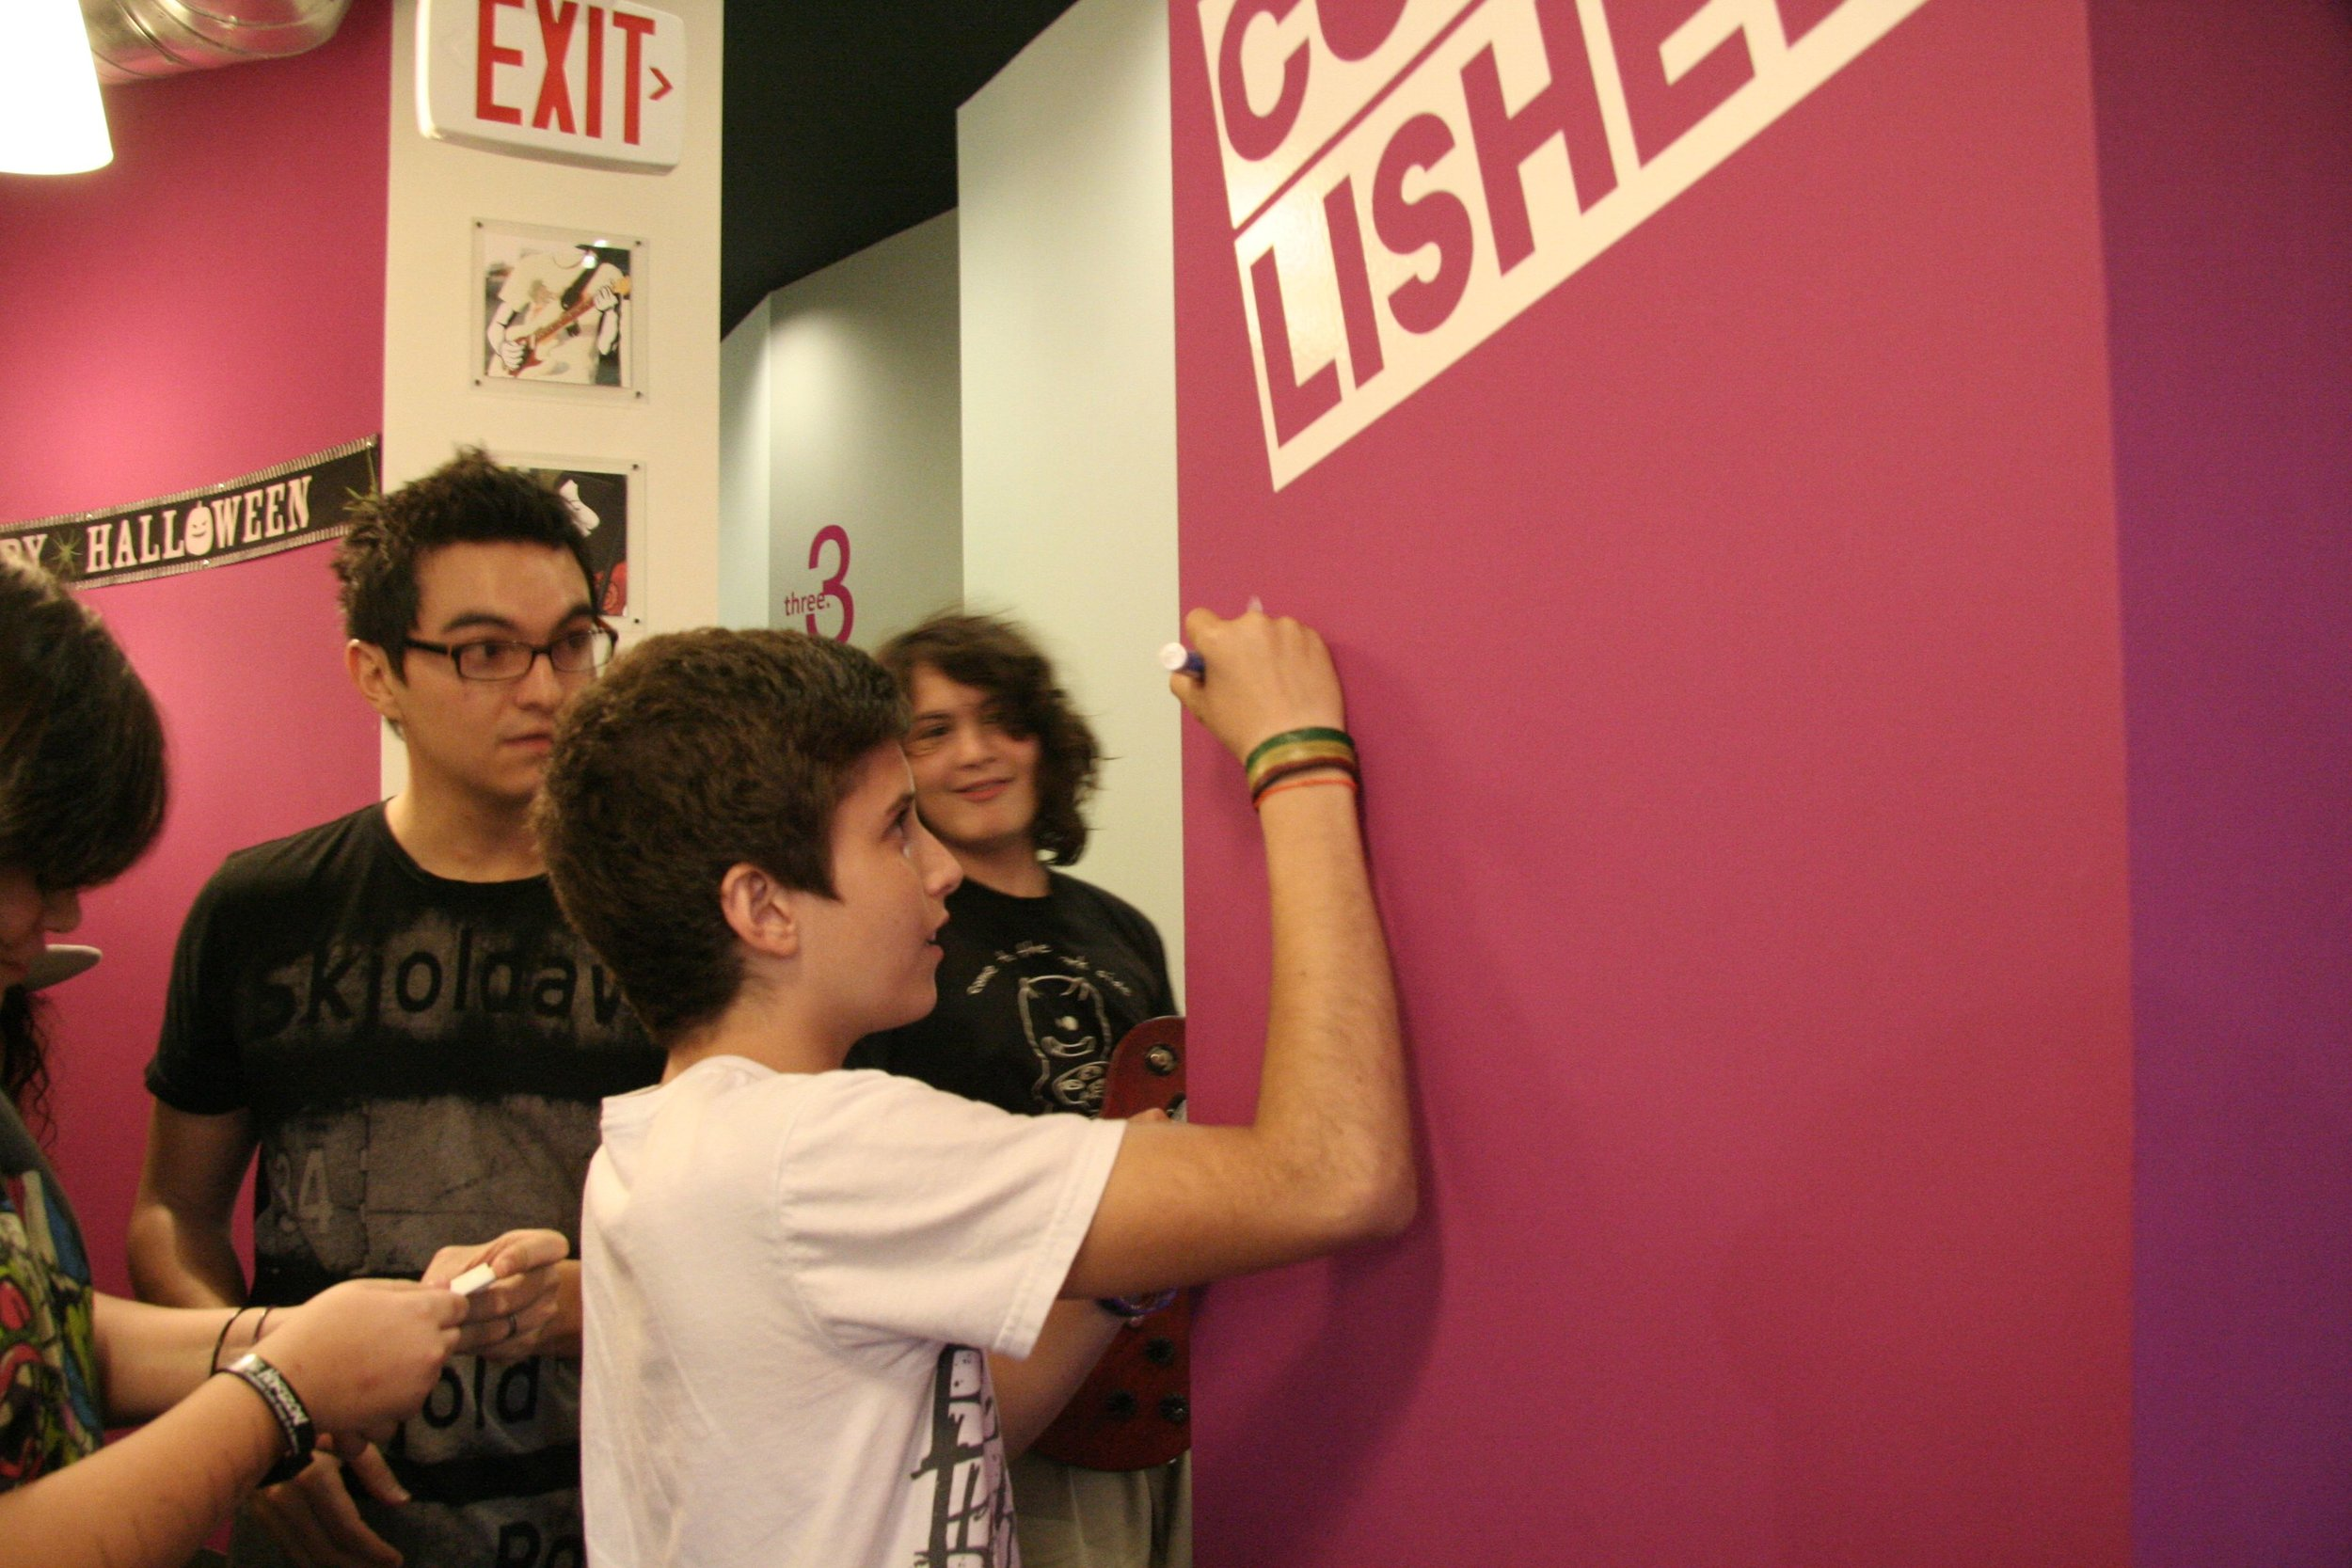 OCTOBER - First Signature on our Wall of Fame